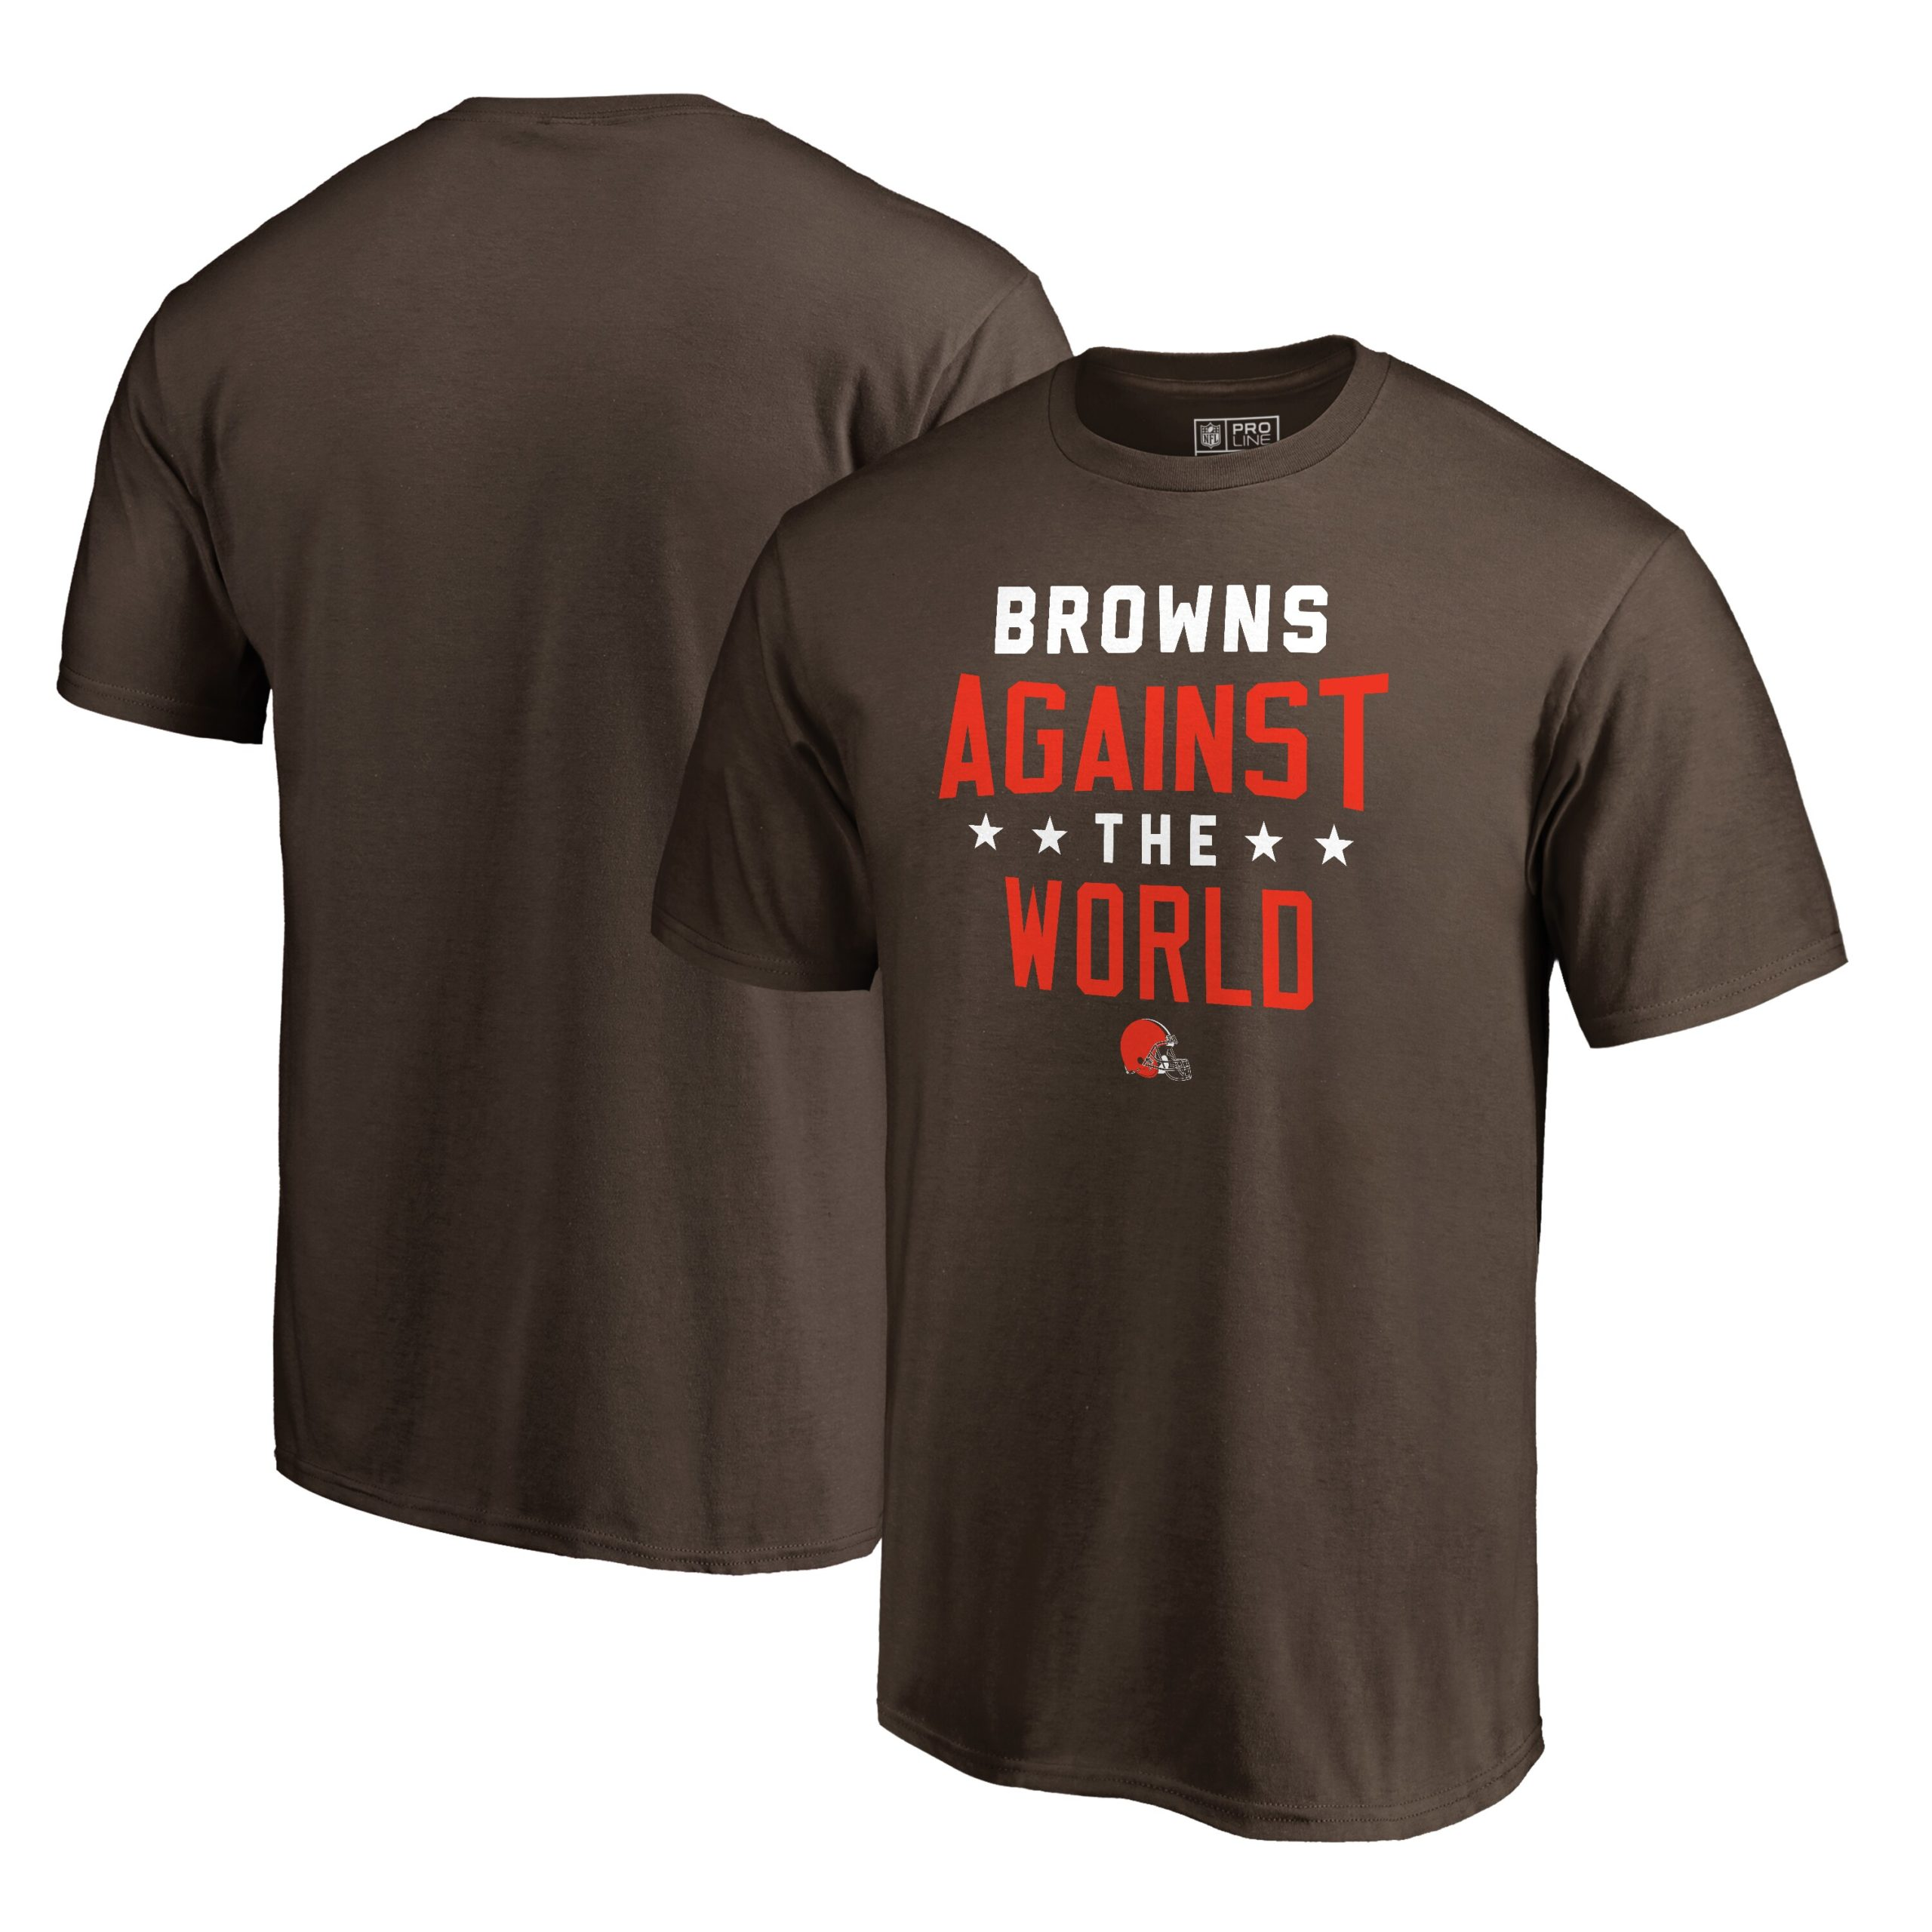 Cleveland Browns NFL Pro Line by Fanatics Branded Against The World T-Shirt - Brown